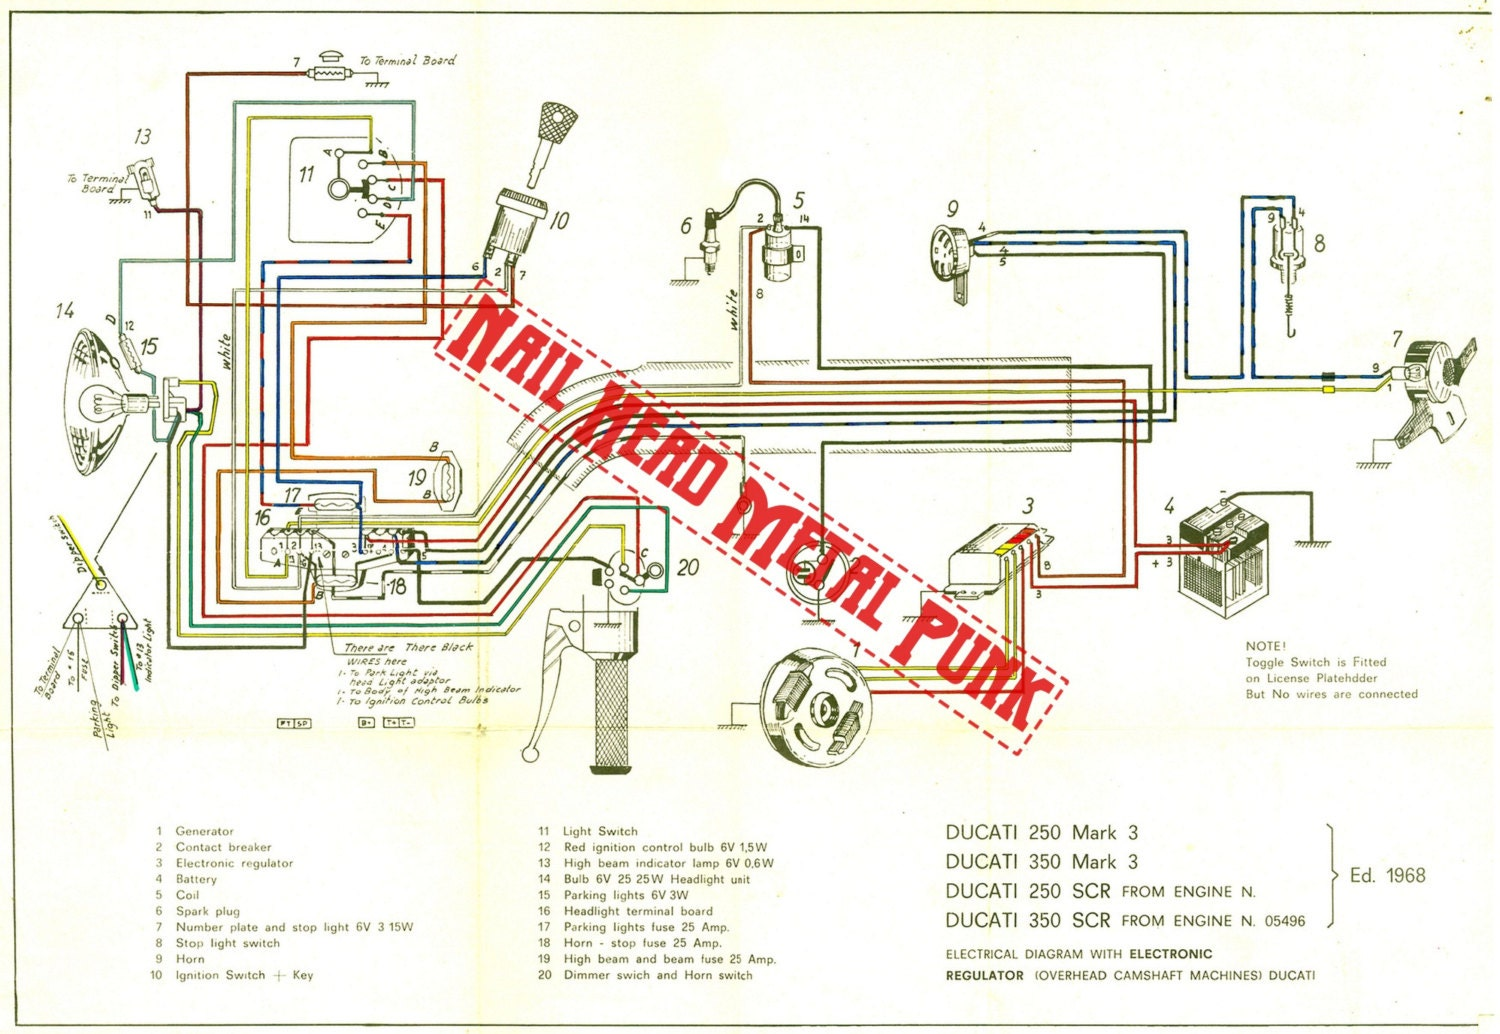 Ducati 250 Mac 3 Wiring Diagram Ducati 250 Mark 3 Wiring